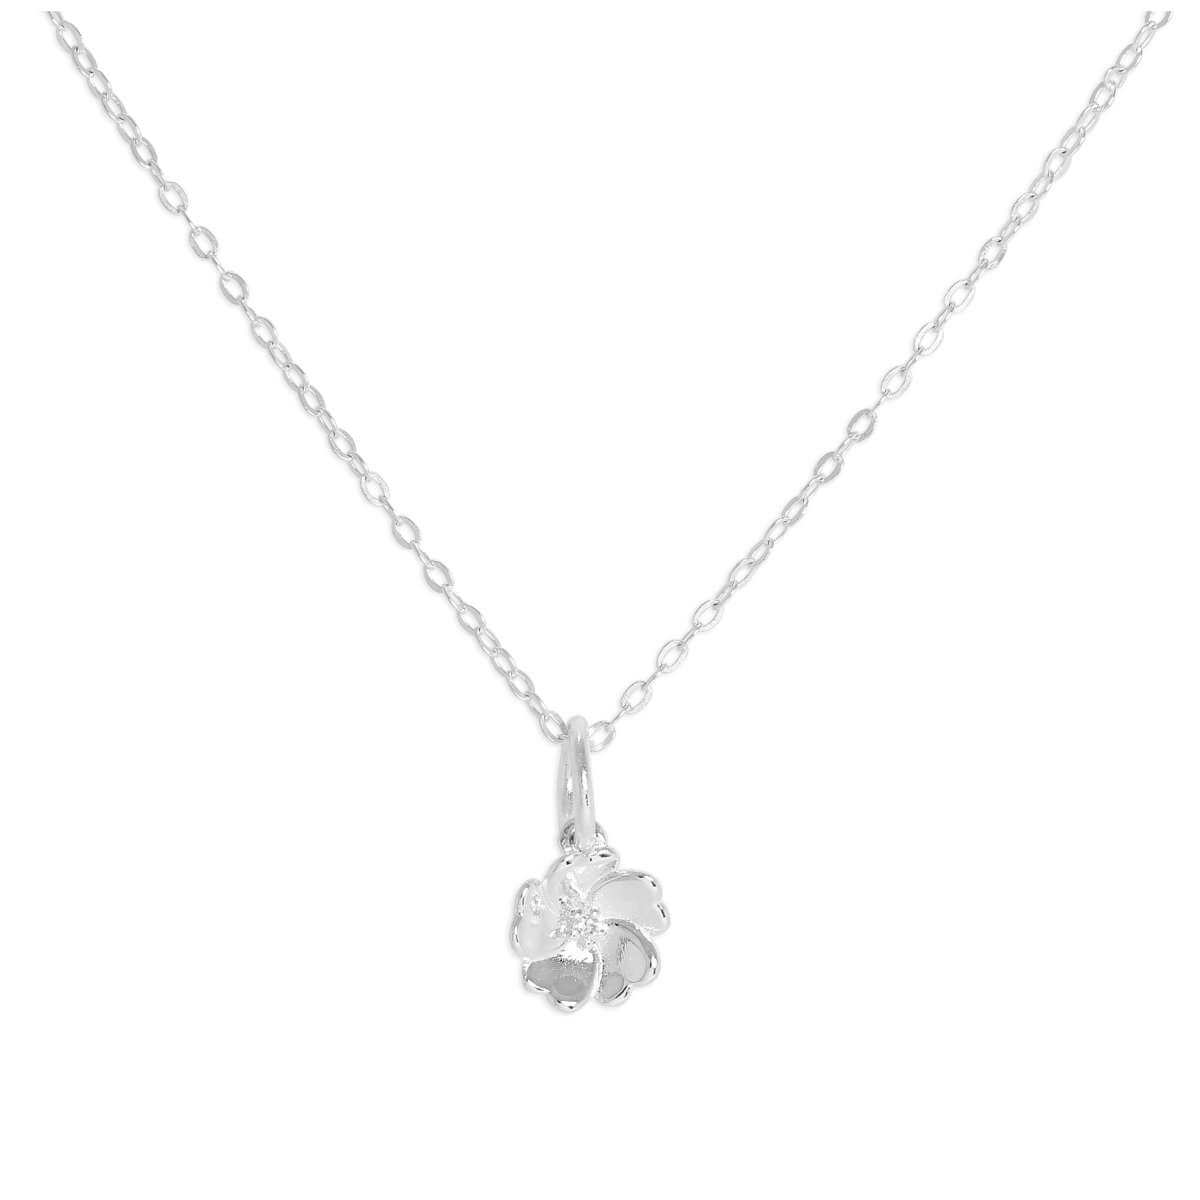 Sterling Silver & Genuine Diamond Flower Necklace 16 Inches Chain